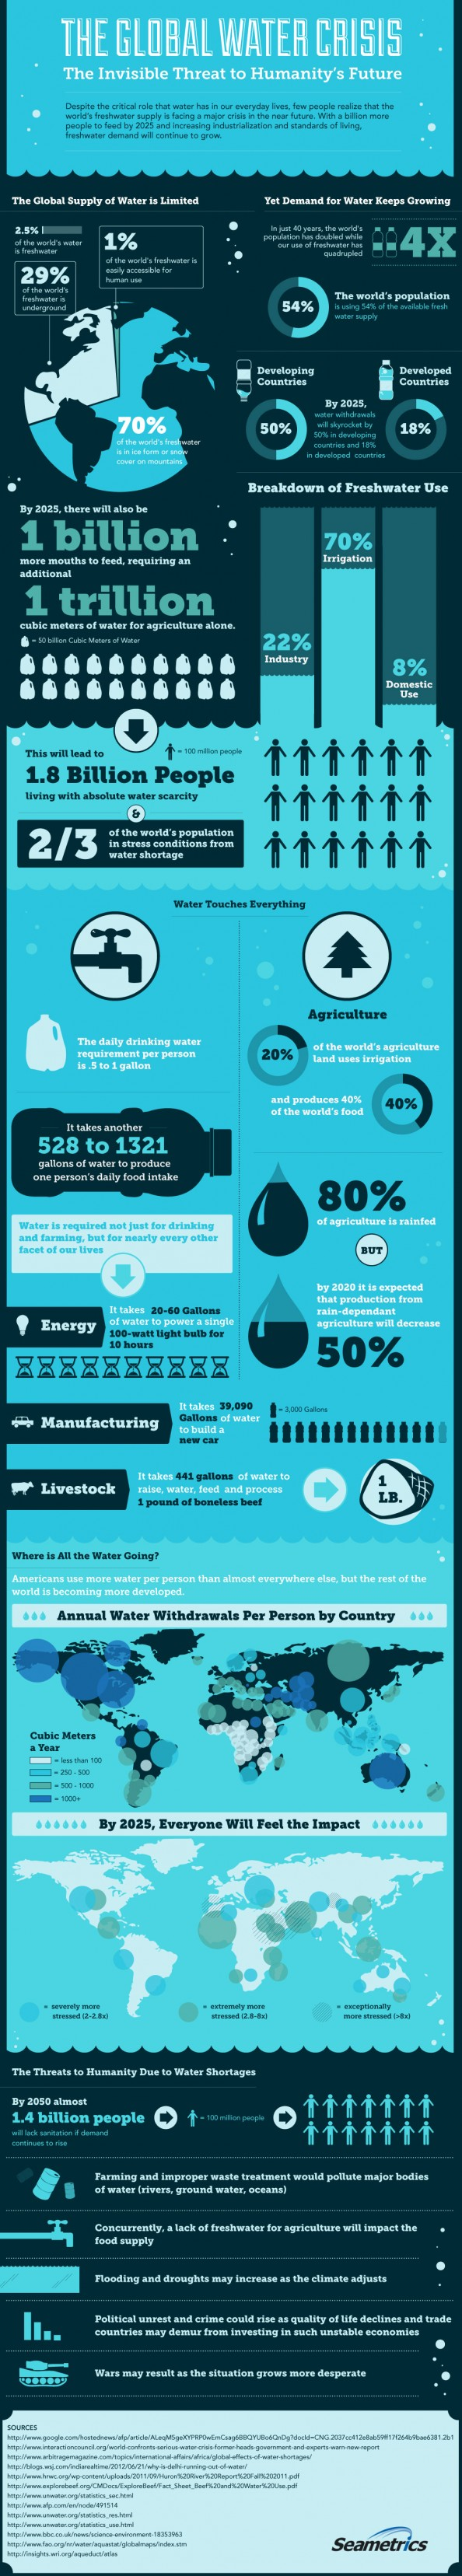 The Global Water Crisis Visual Ly Water Crisis Infographic Water Crisis Infographic